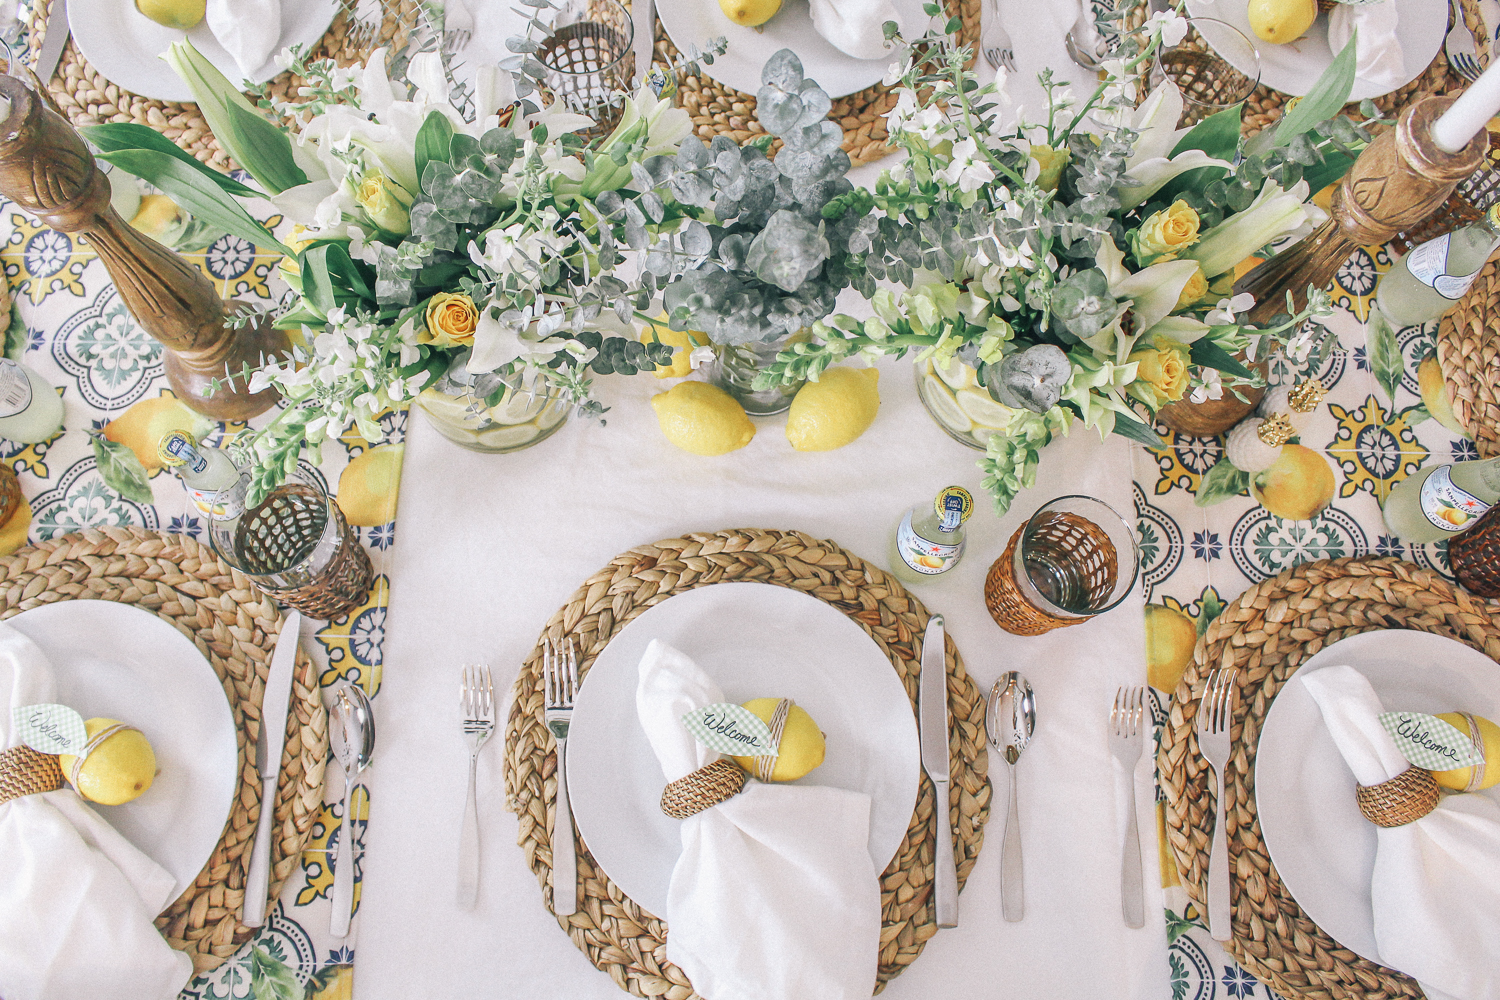 Lemon Party Decor U0026 Table Setting